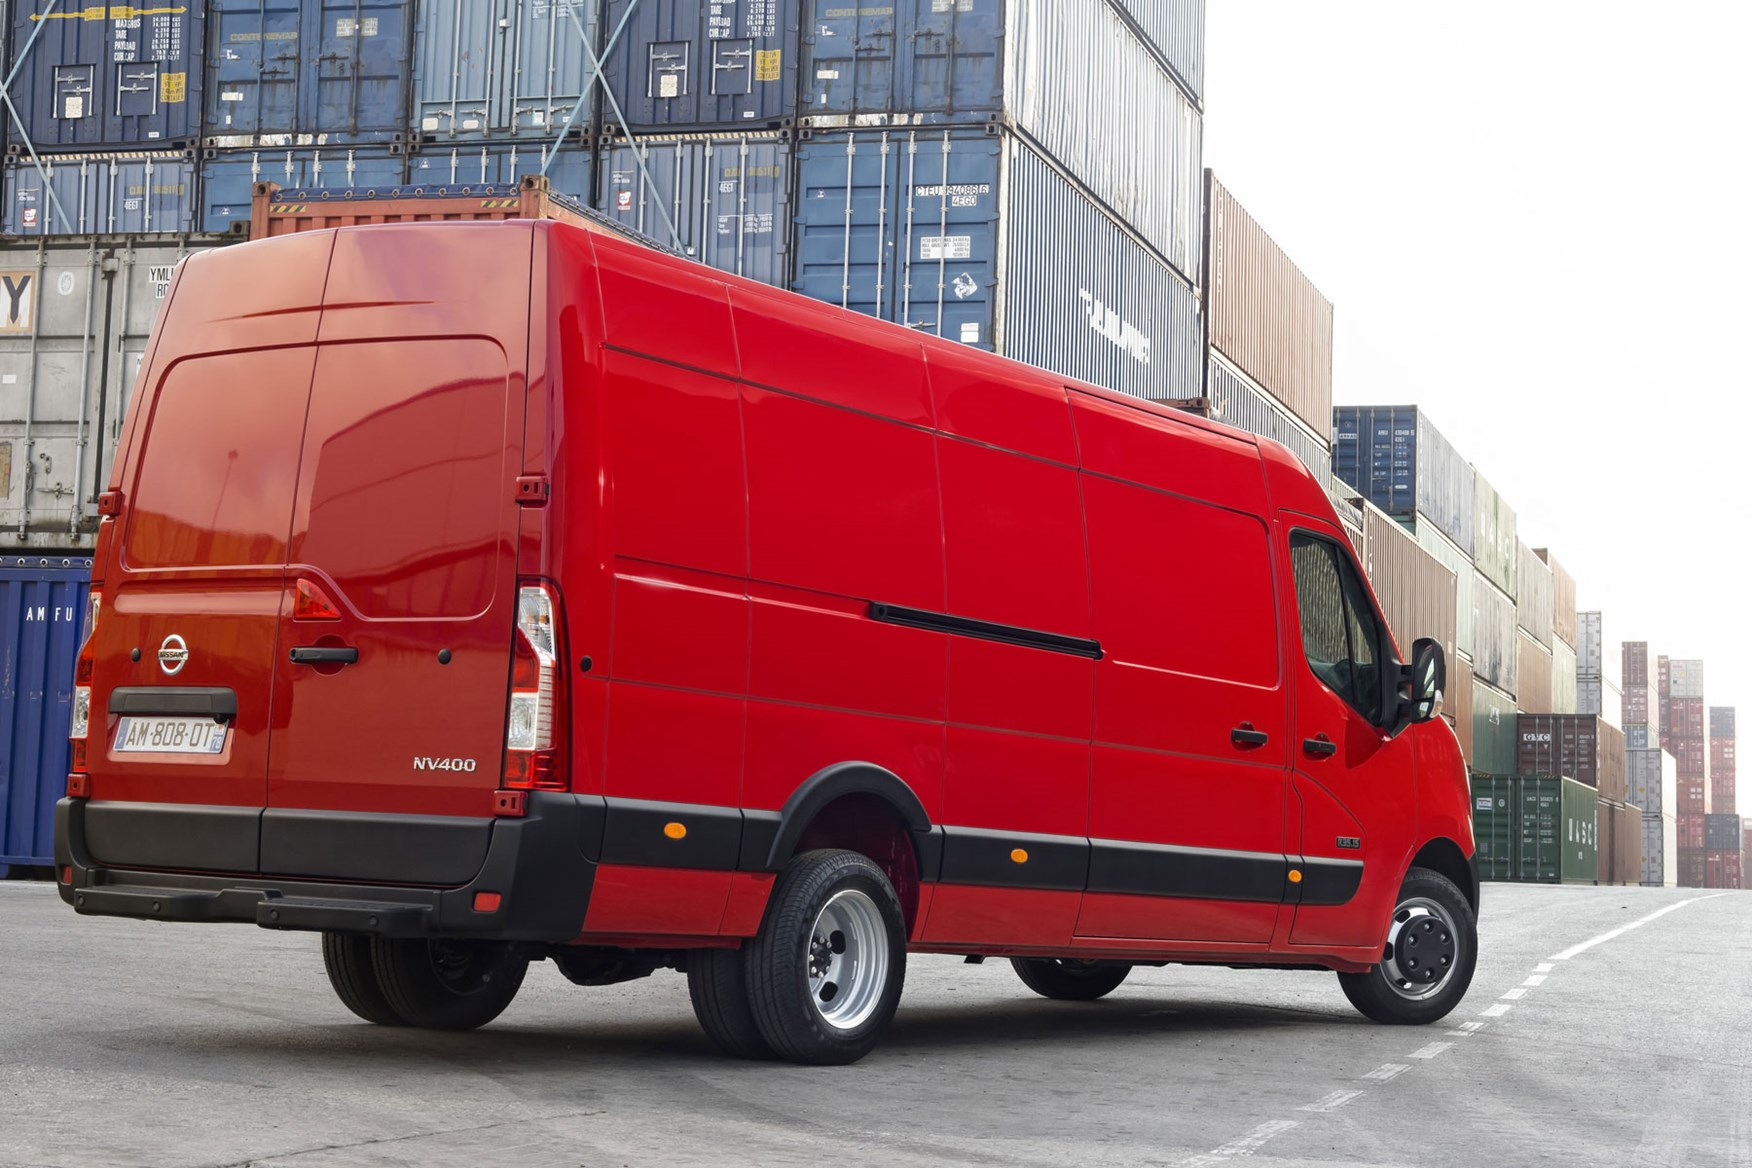 Nissan NV400 review - rear view, red, massive, twin-axle RWD, 2014 model